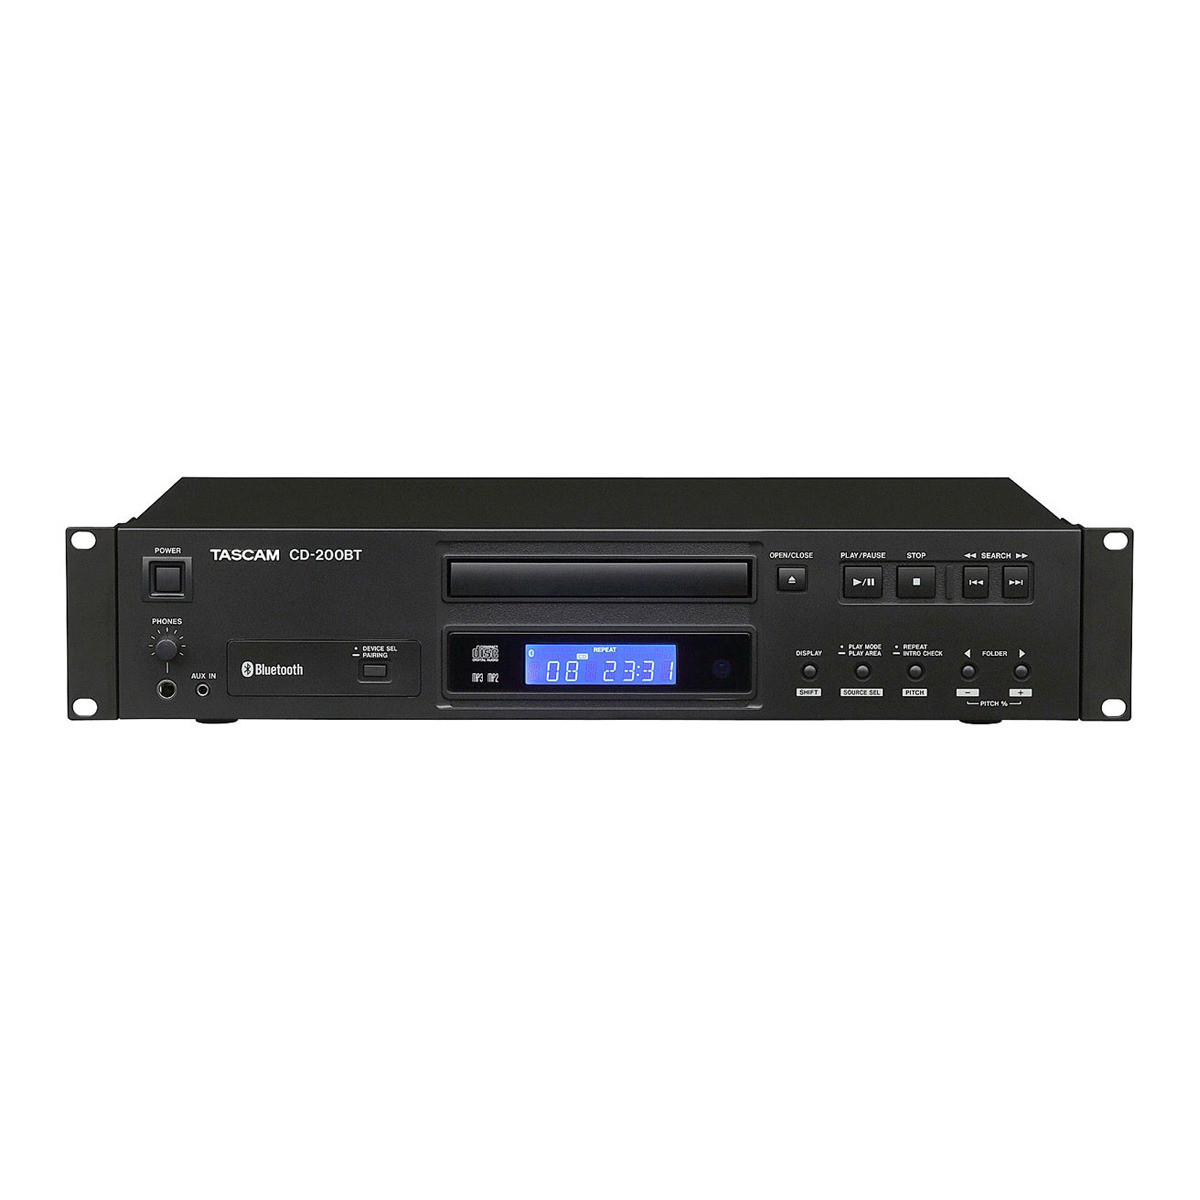 tascam cd 200bt rack mount cd player with bluetooth